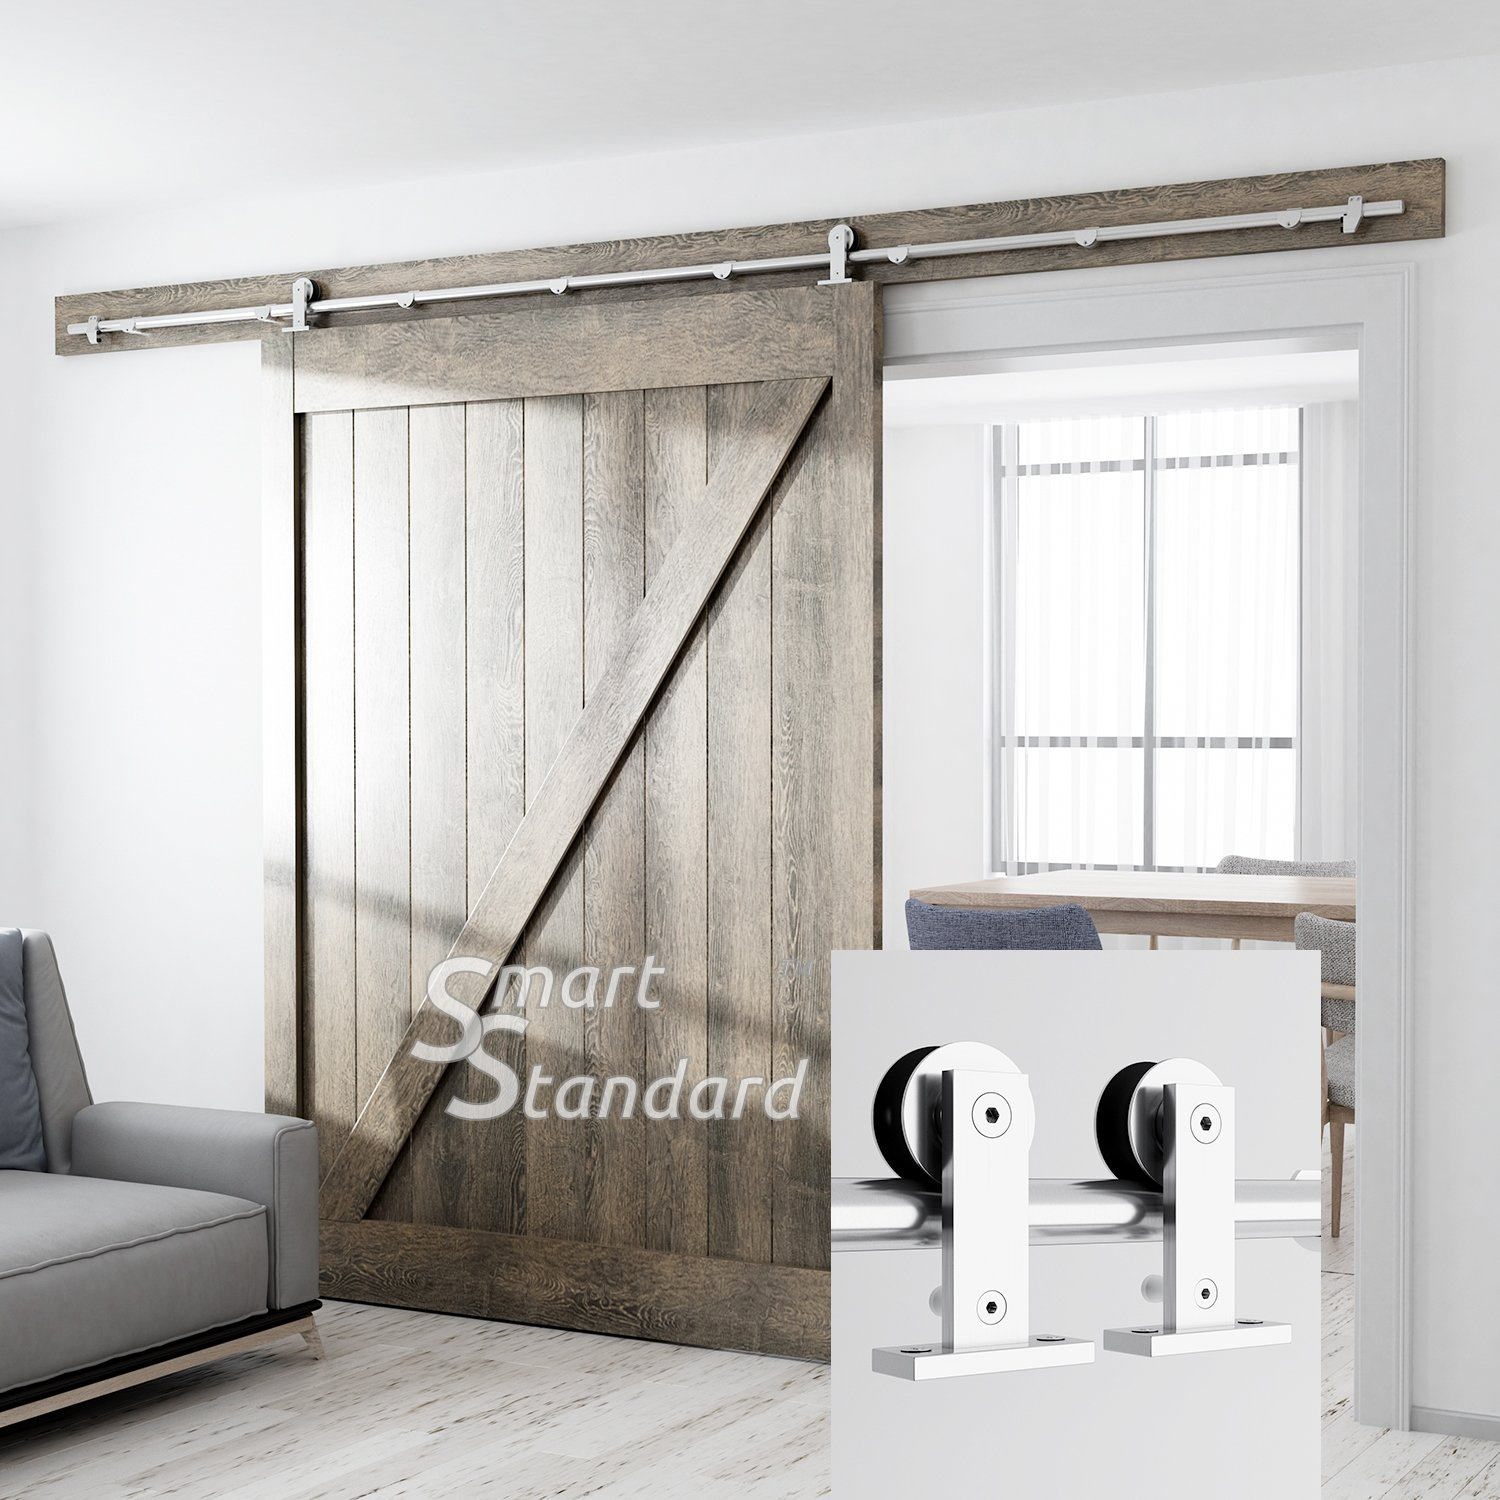 10ft Heavy Duty Sturdy Sliding Barn Door Hardware Kit - Super Smoothly and Quietly - Simple and Easy to Install - Includes Step-by-Step Installation Instruction -Fit 60'' Wide Door Panel